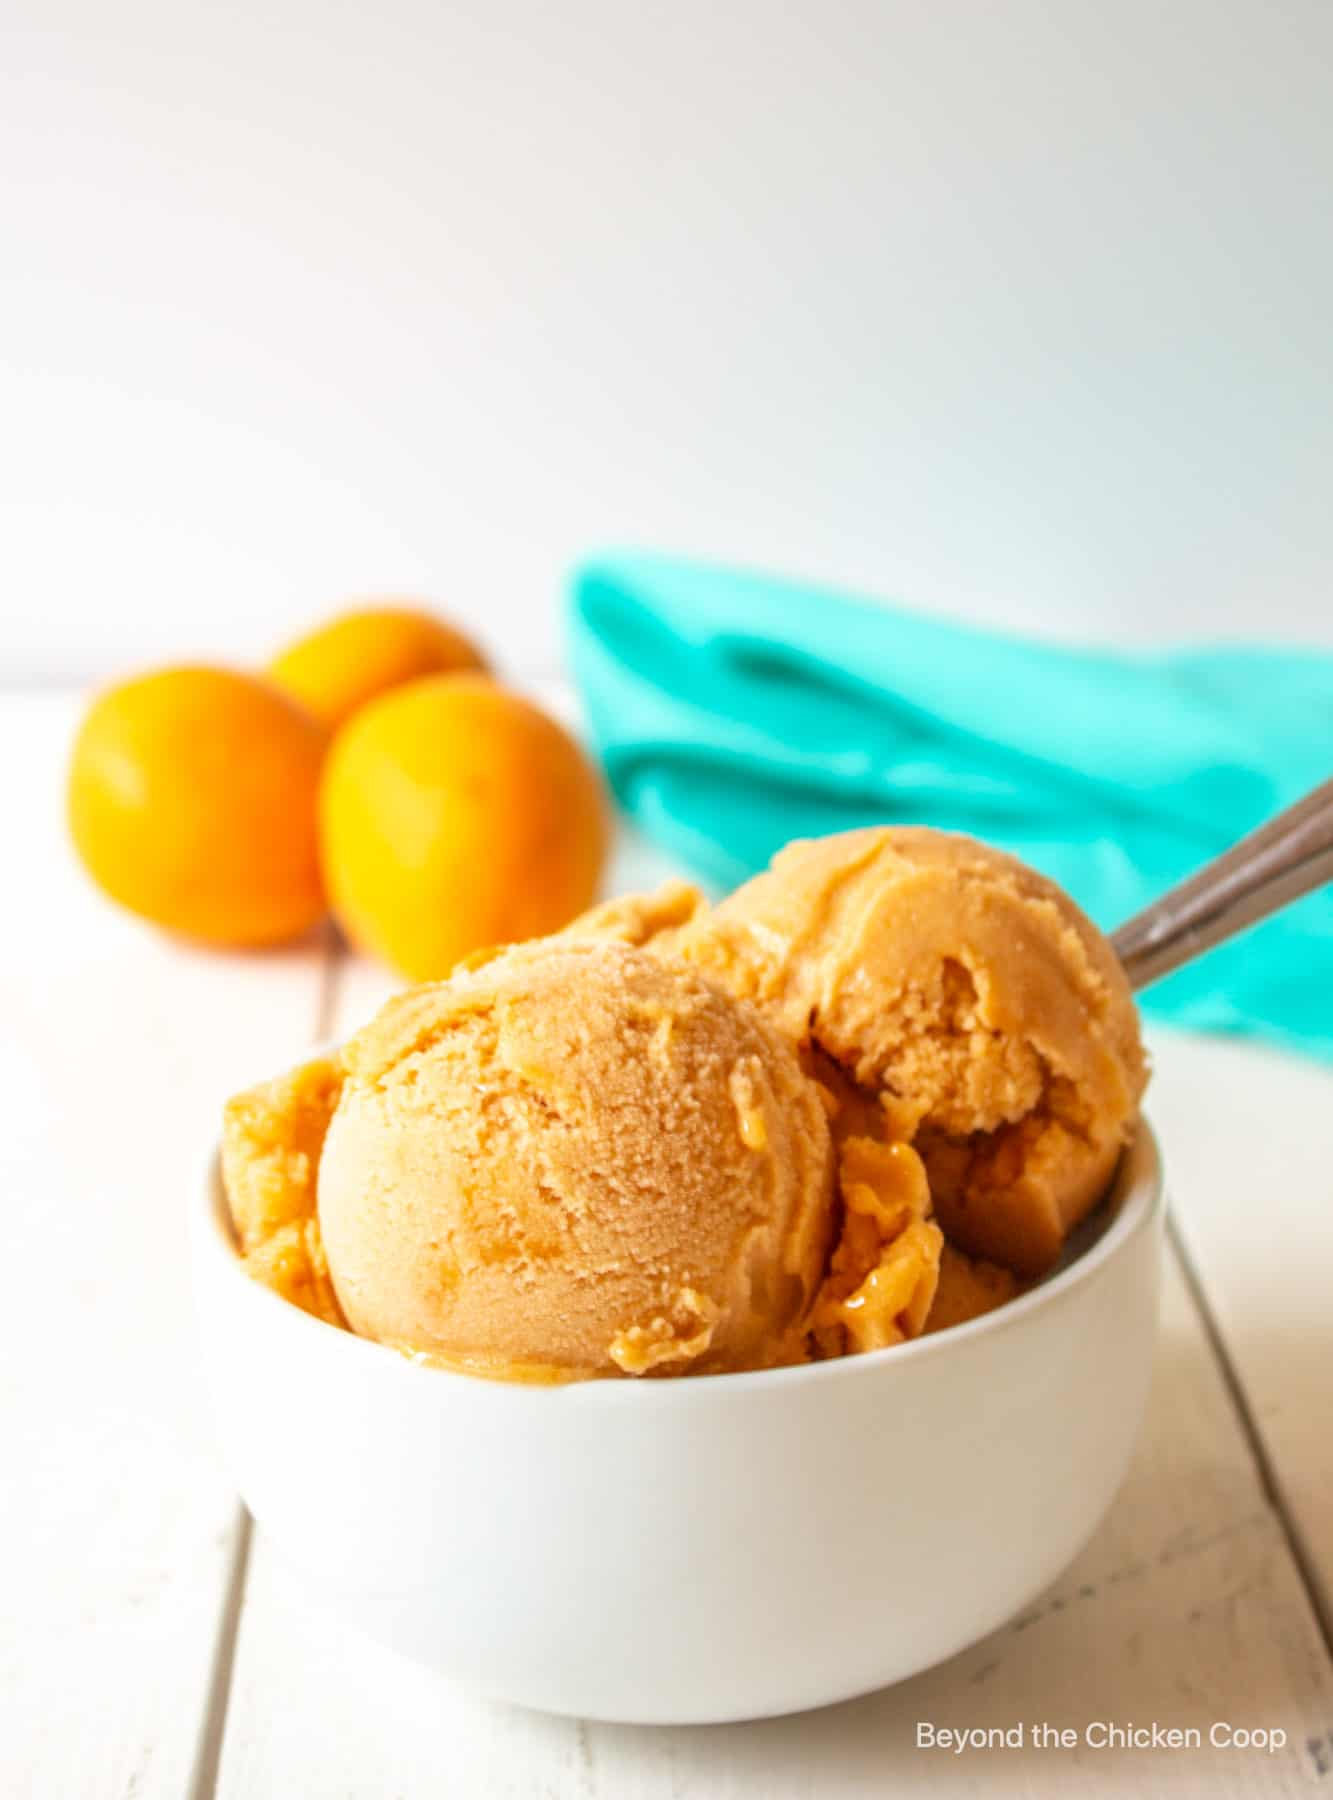 Scoops of apricot sorbet in a white bowl.